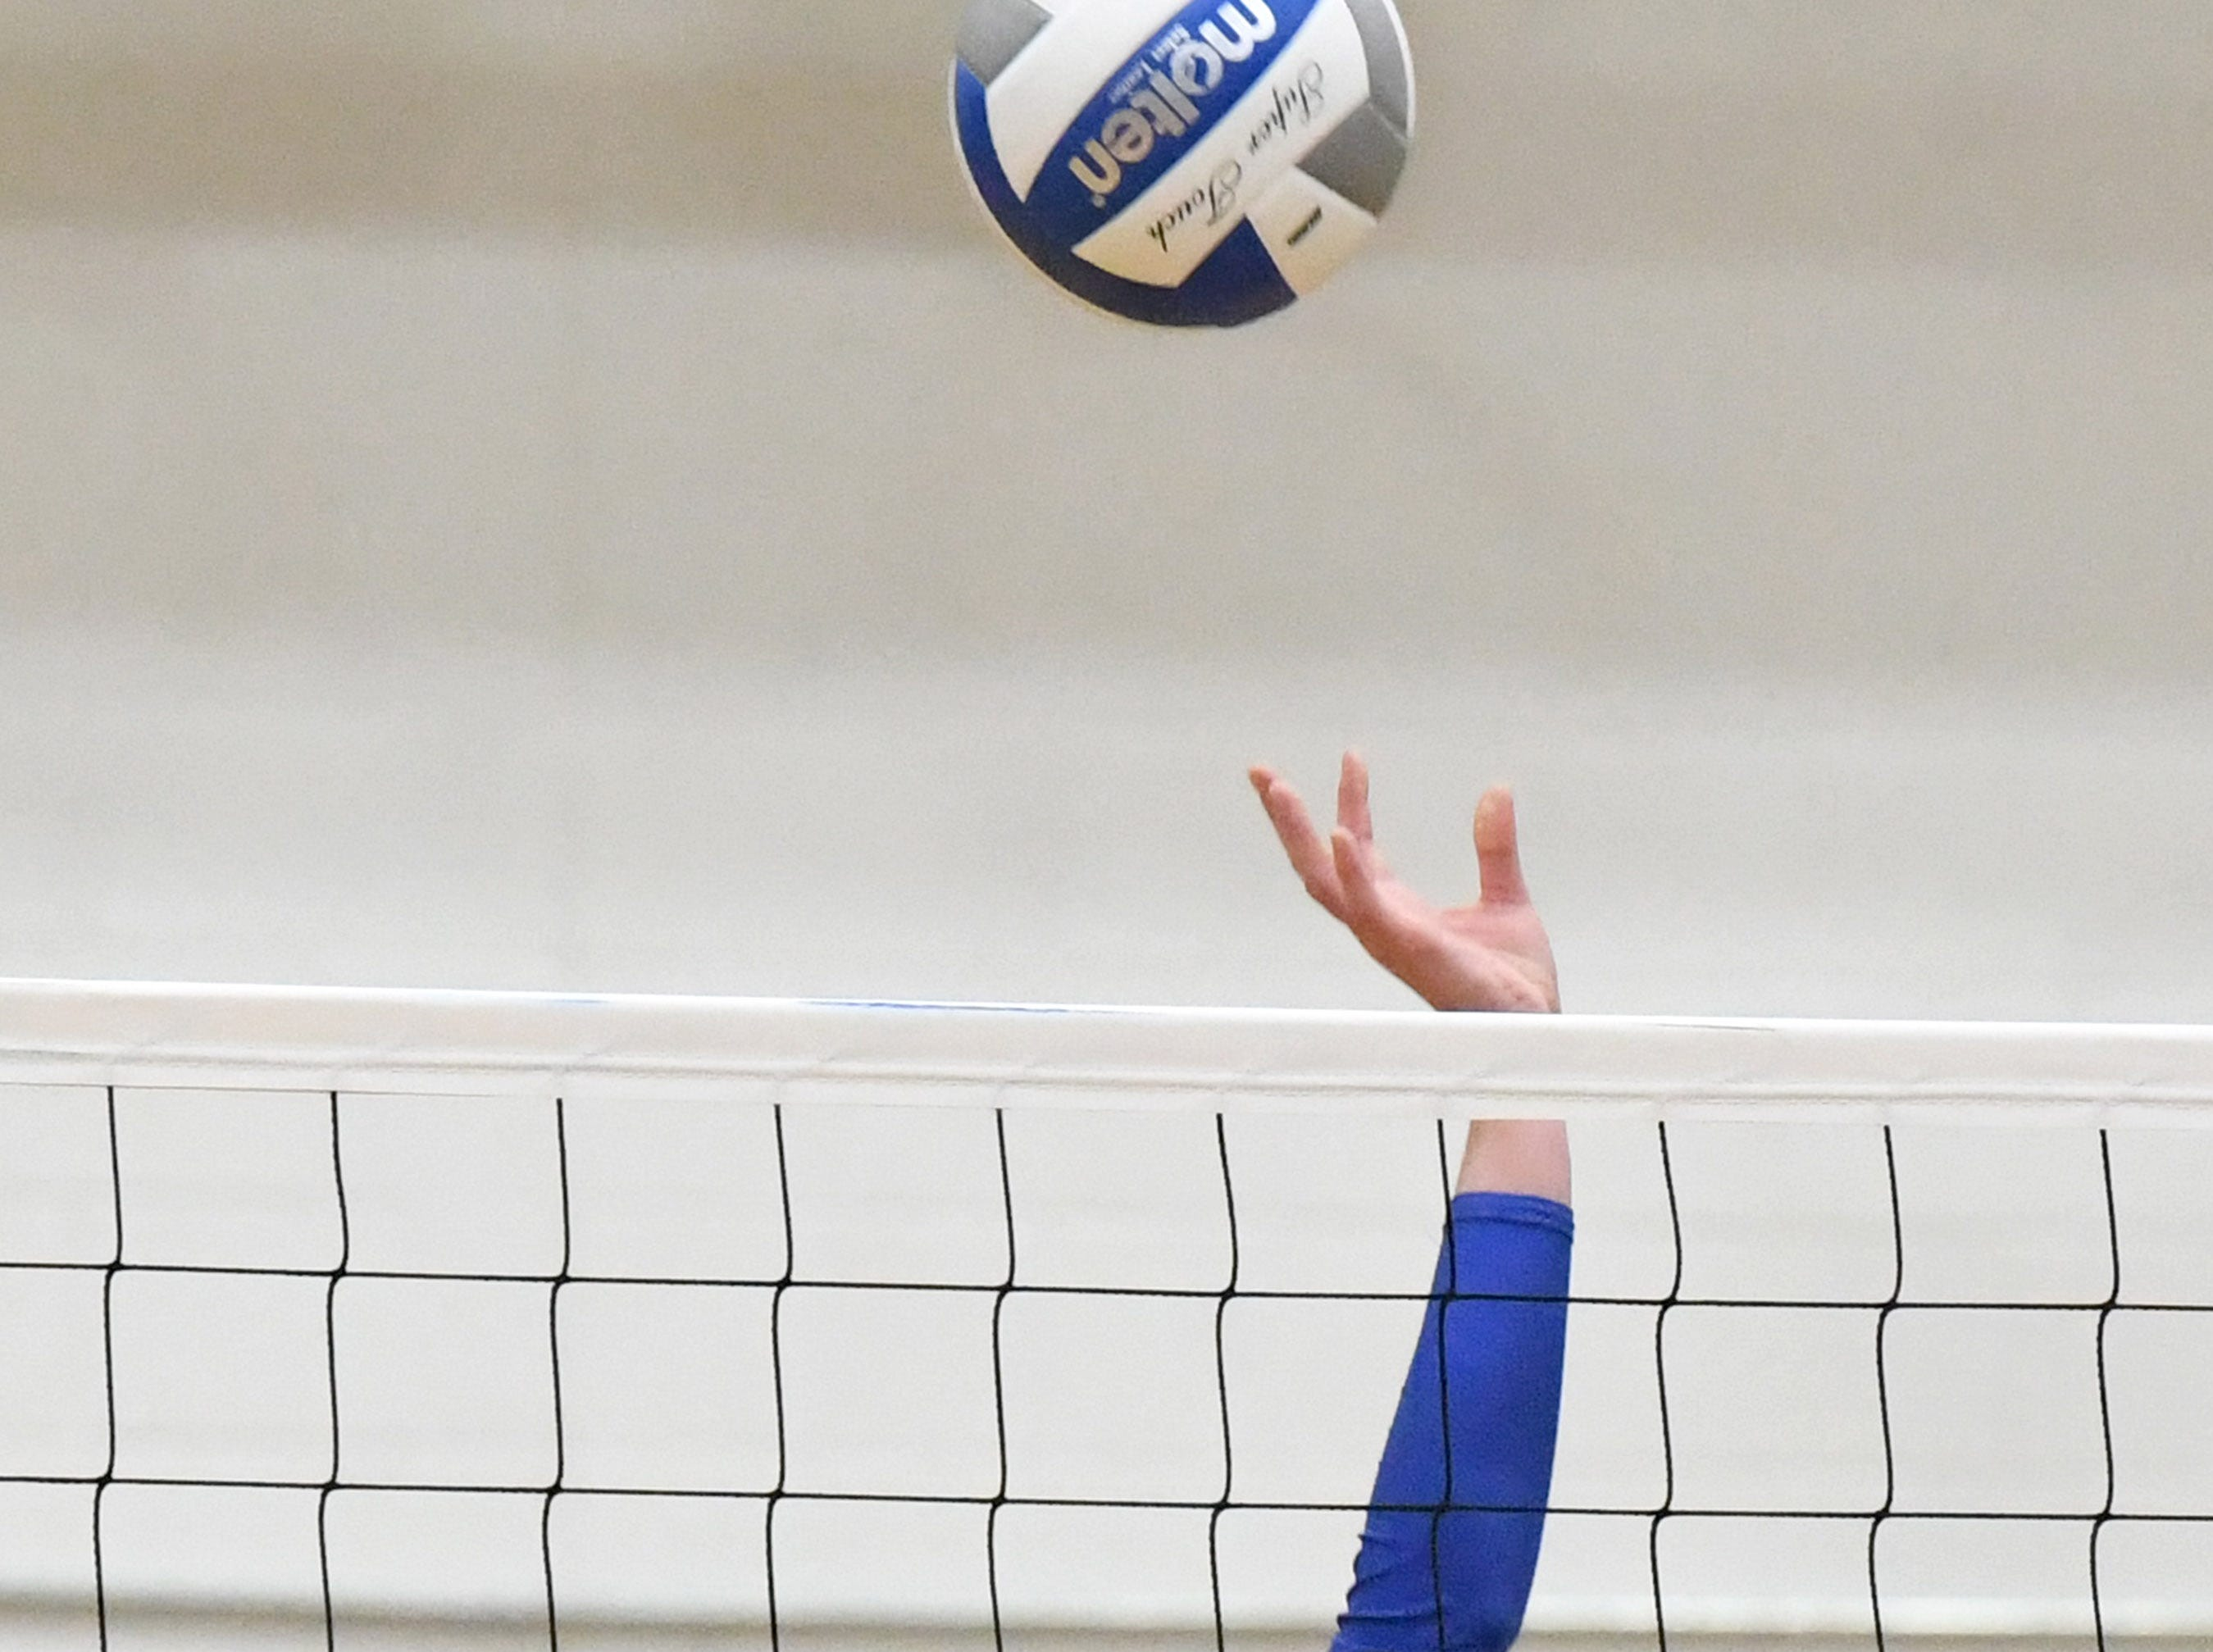 Fort Defiance's Madison Painter sends the ball back across the net during a Region 3C semifinal match played in Lexington on Monday, Nov. 5, 2018.